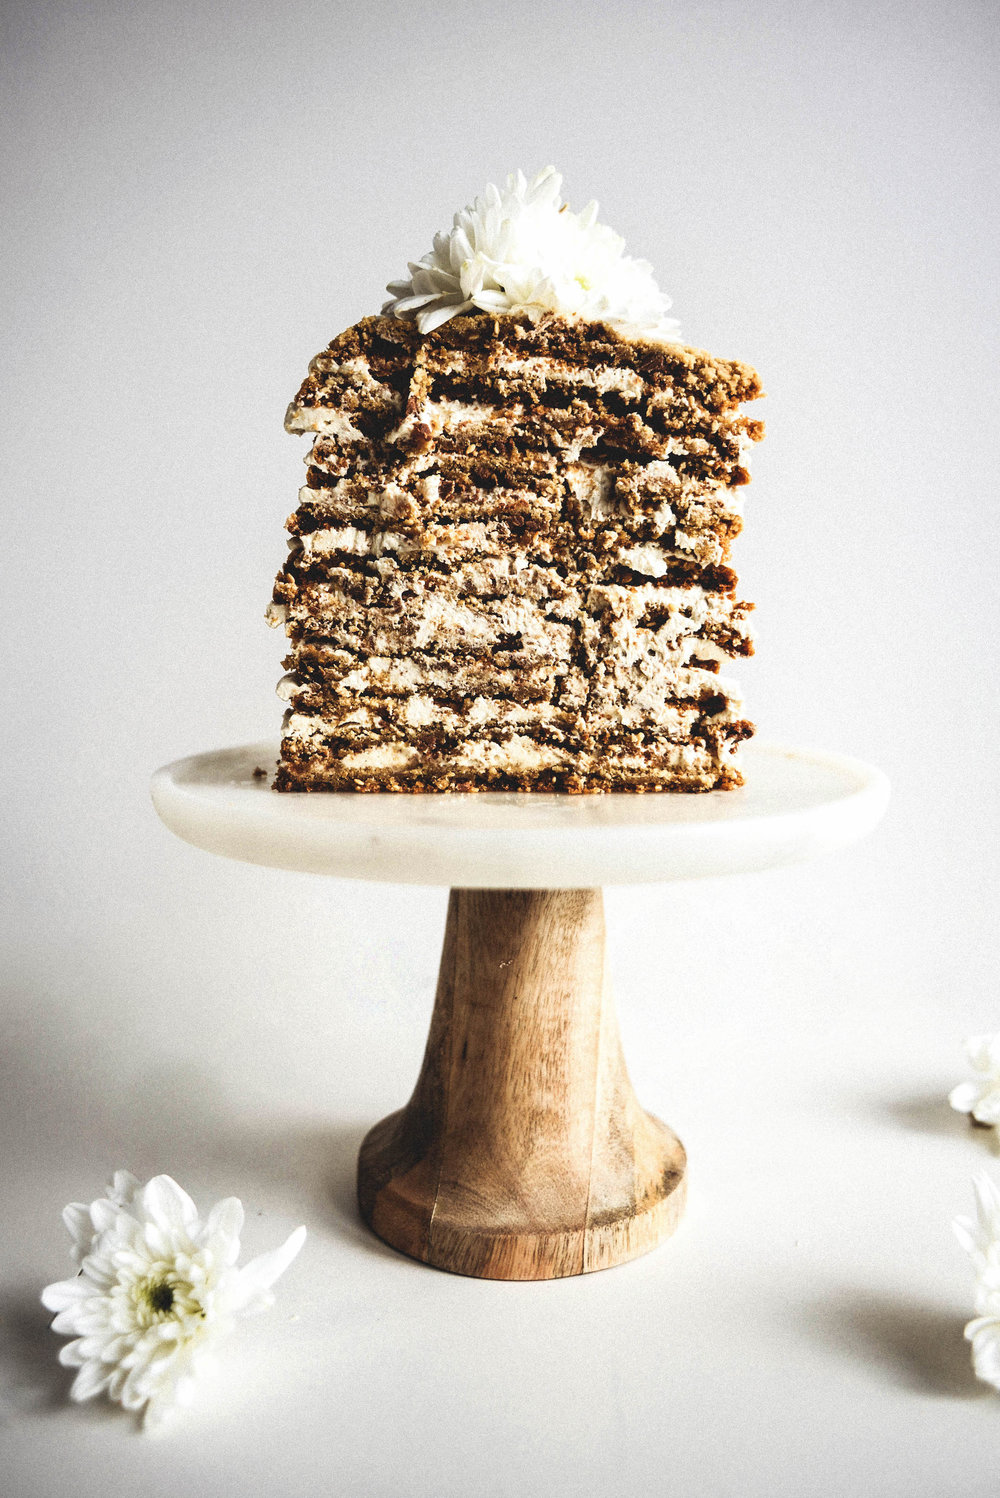 Toasted-Sesame-and-Chocolate-Cookie-Cake-with-Tahini-Halva-Buttercream-1.jpg